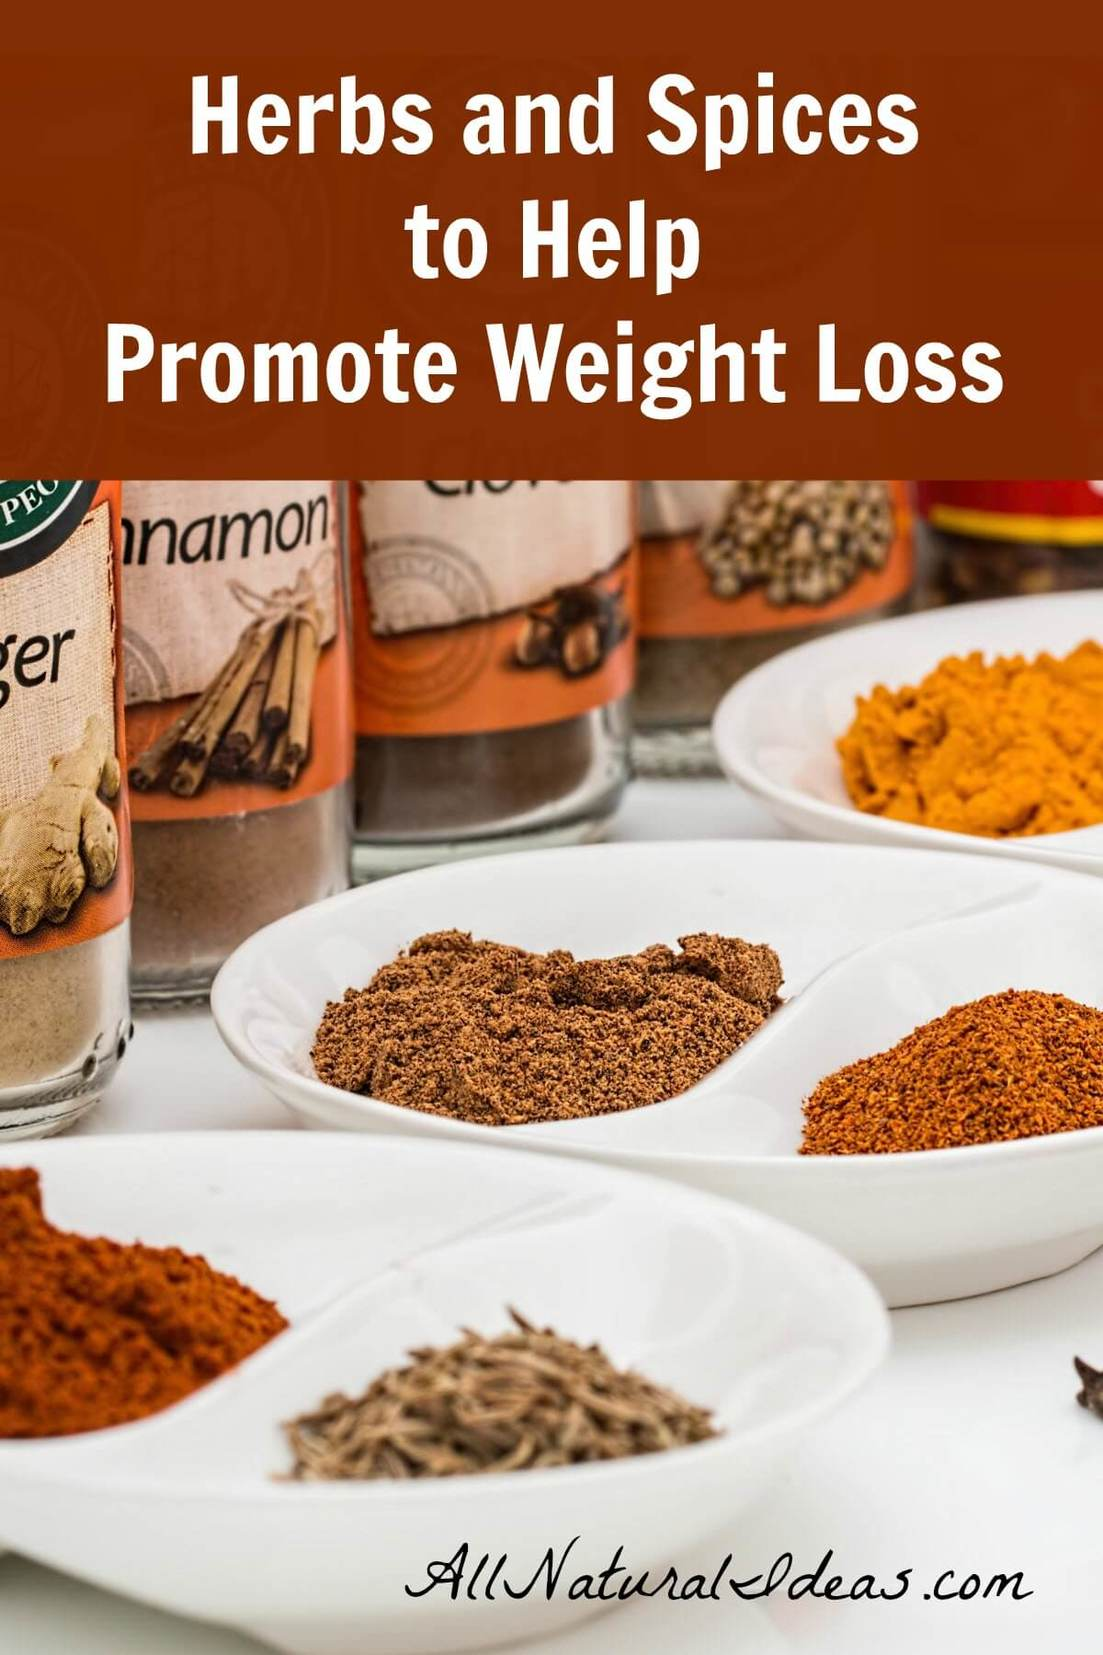 Exercising? Eating fruits and vegetables? Still struggling to lose weight? Try adding natural weight loss herbs and spices to help shed extra pounds!